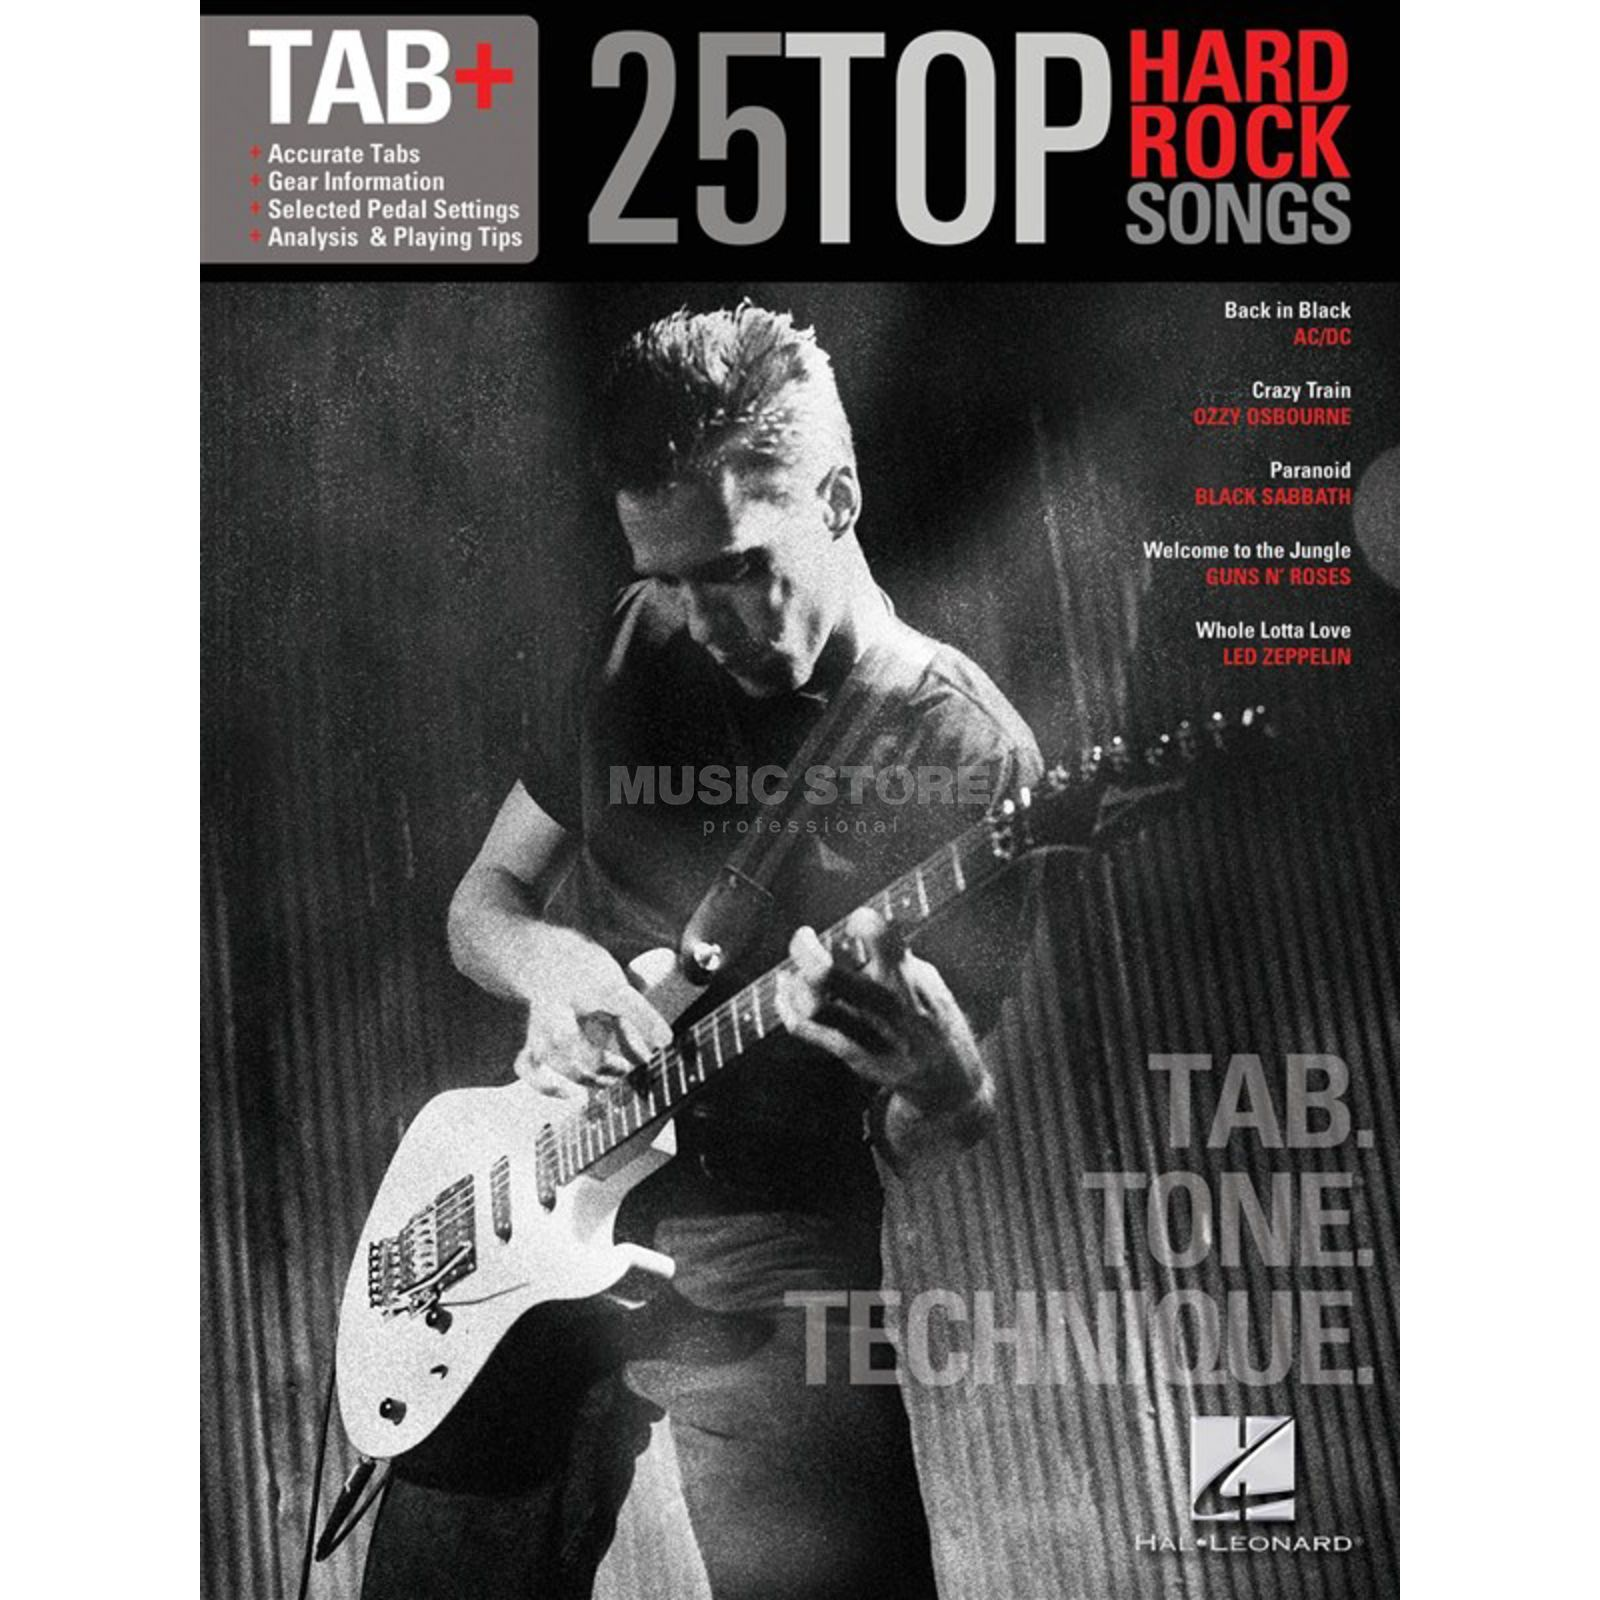 Hal Leonard Tab+: 25 Top Hard Rock Songs - Tab. Tone. Technique. Product Image